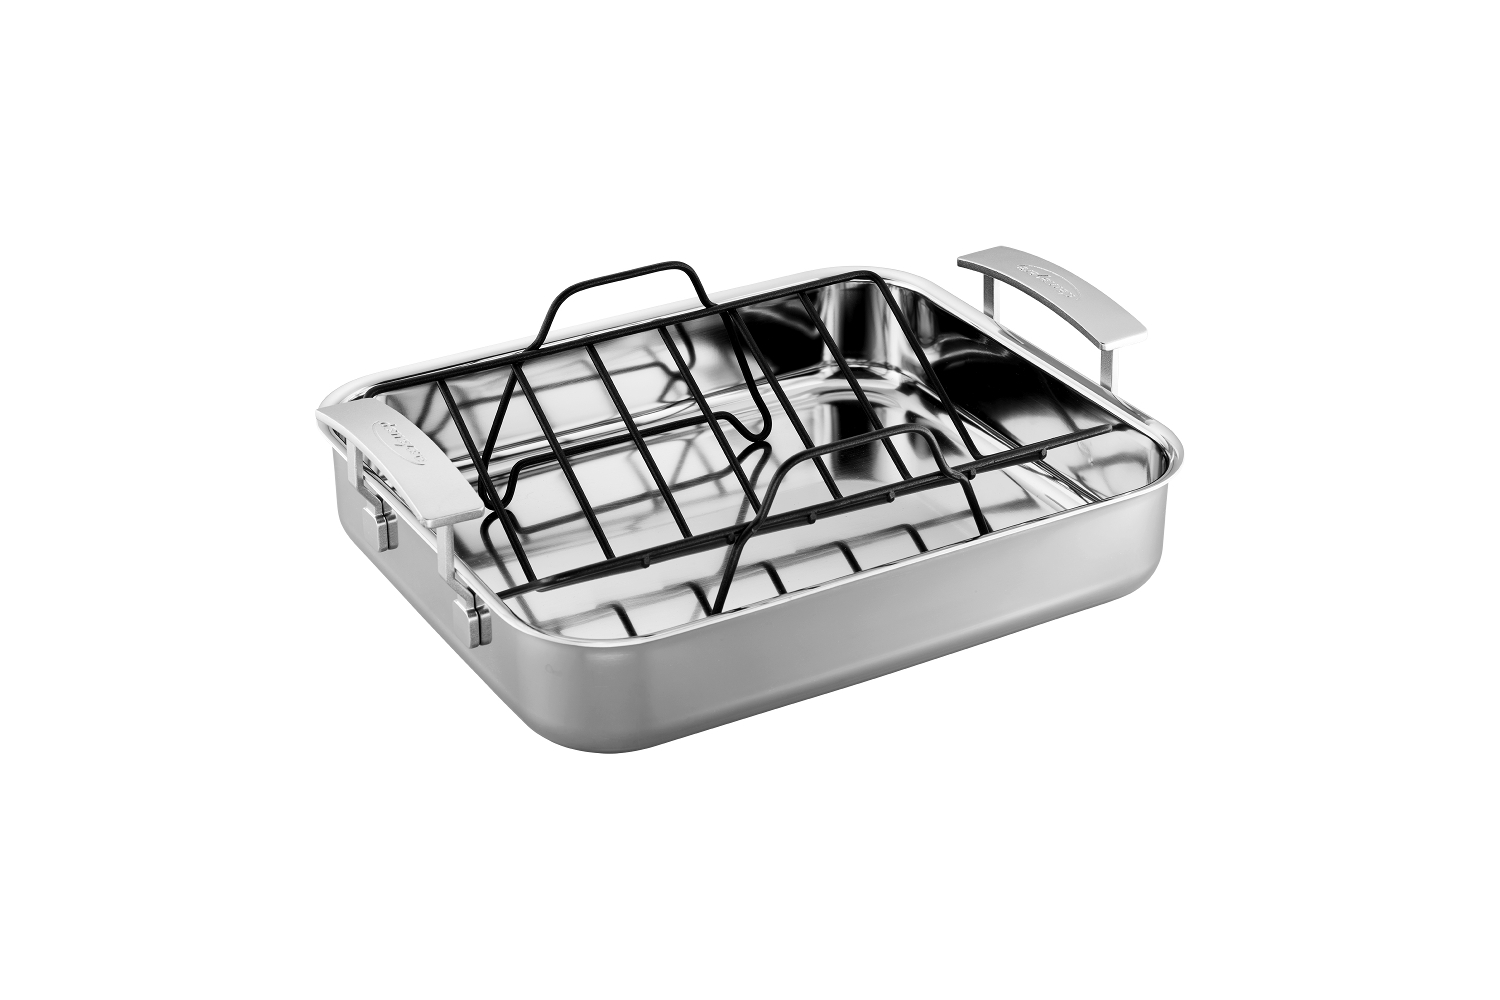 Demeyere Industry5 Stainless Steel 15.7 x 13.3 inch Roasting Pan